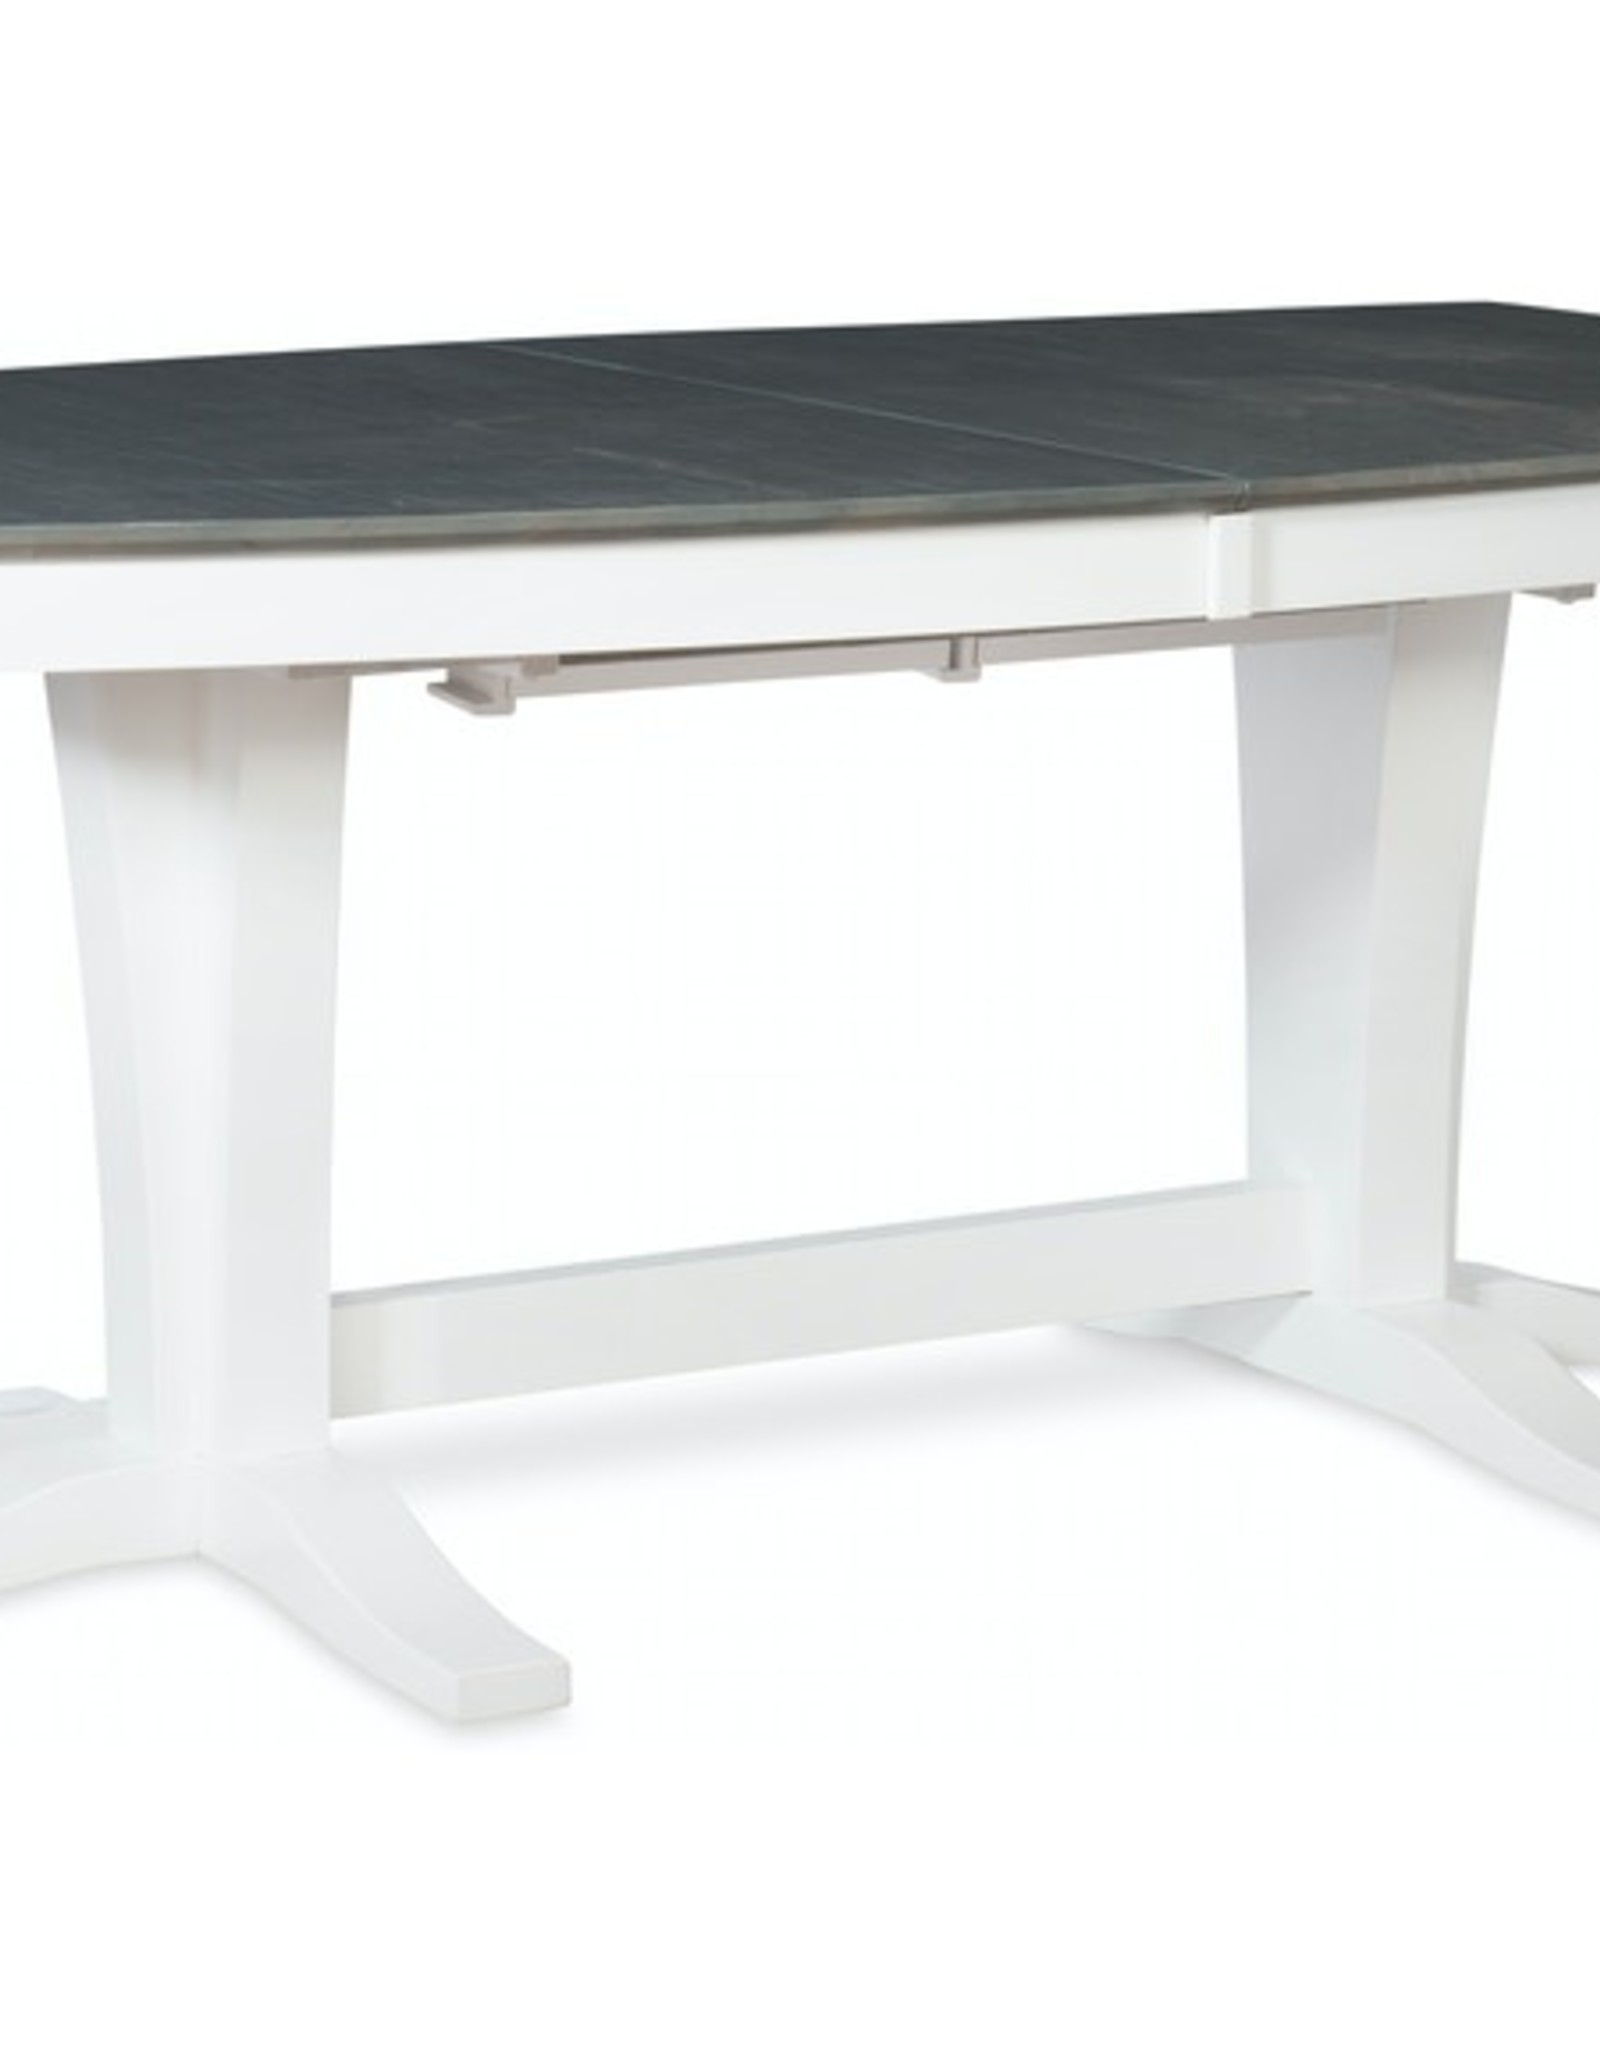 Whitewood Cosmopolitan Milano Table w/ Double Pedestal Base (Specify Color)